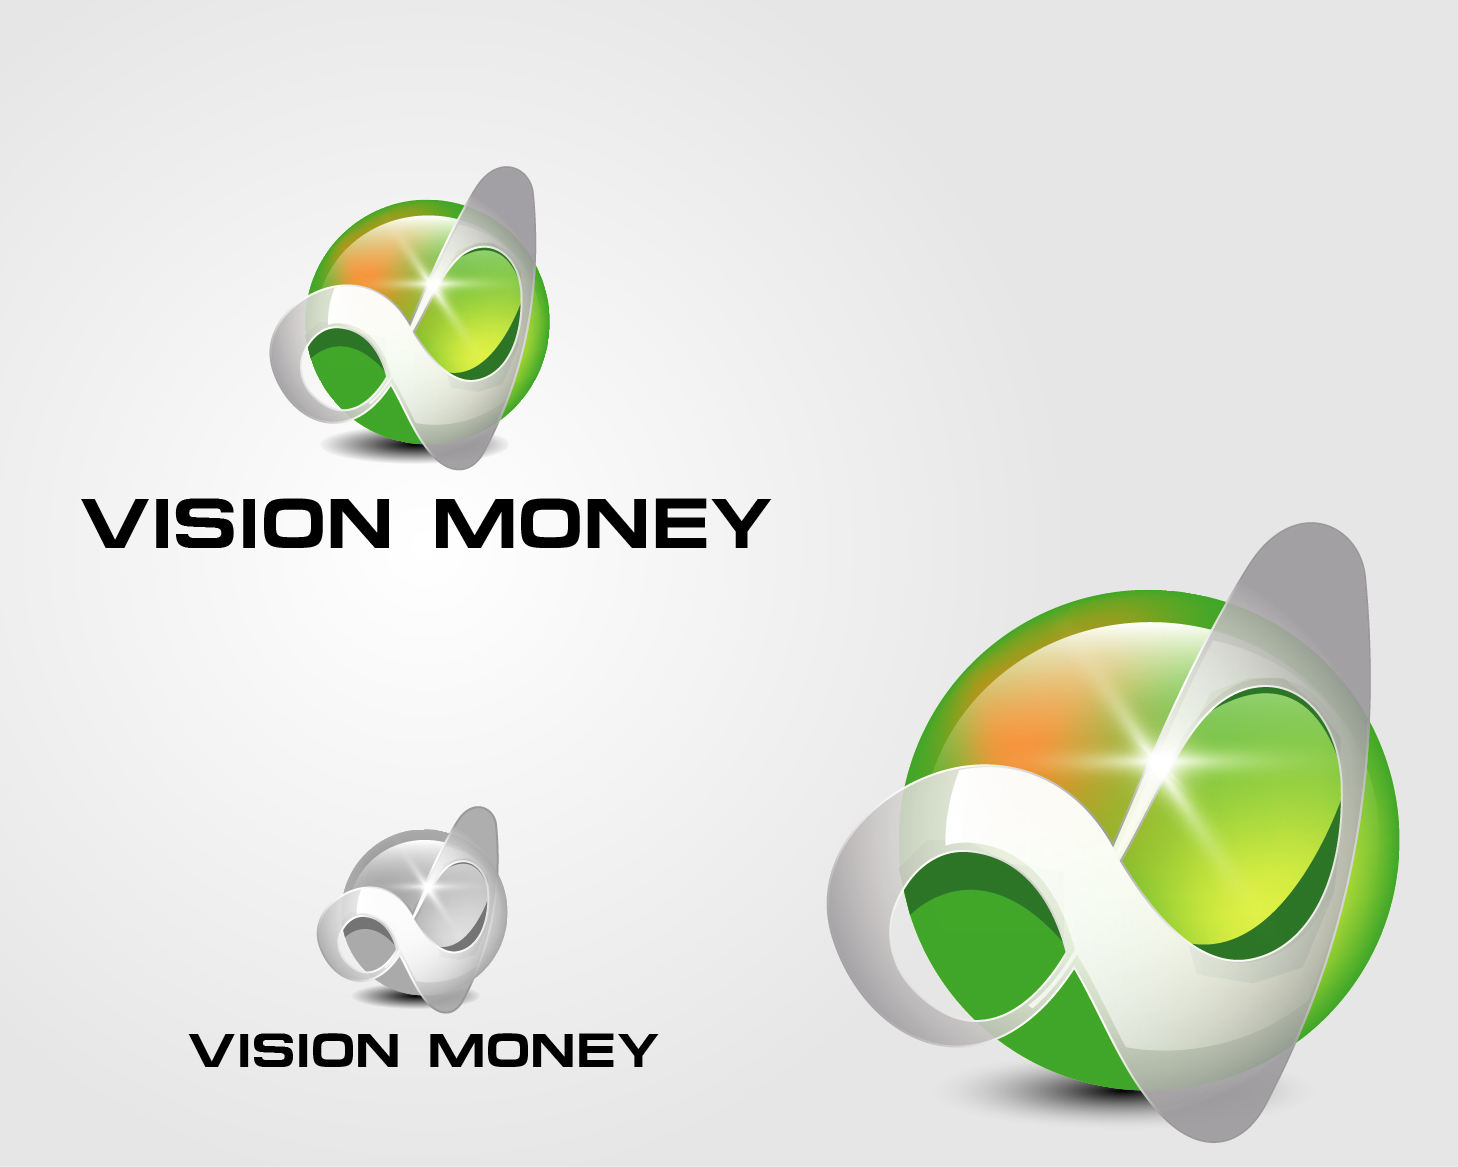 Logo Design by VENTSISLAV KOVACHEV - Entry No. 13 in the Logo Design Contest Captivating Logo Design for VISION MONEY.